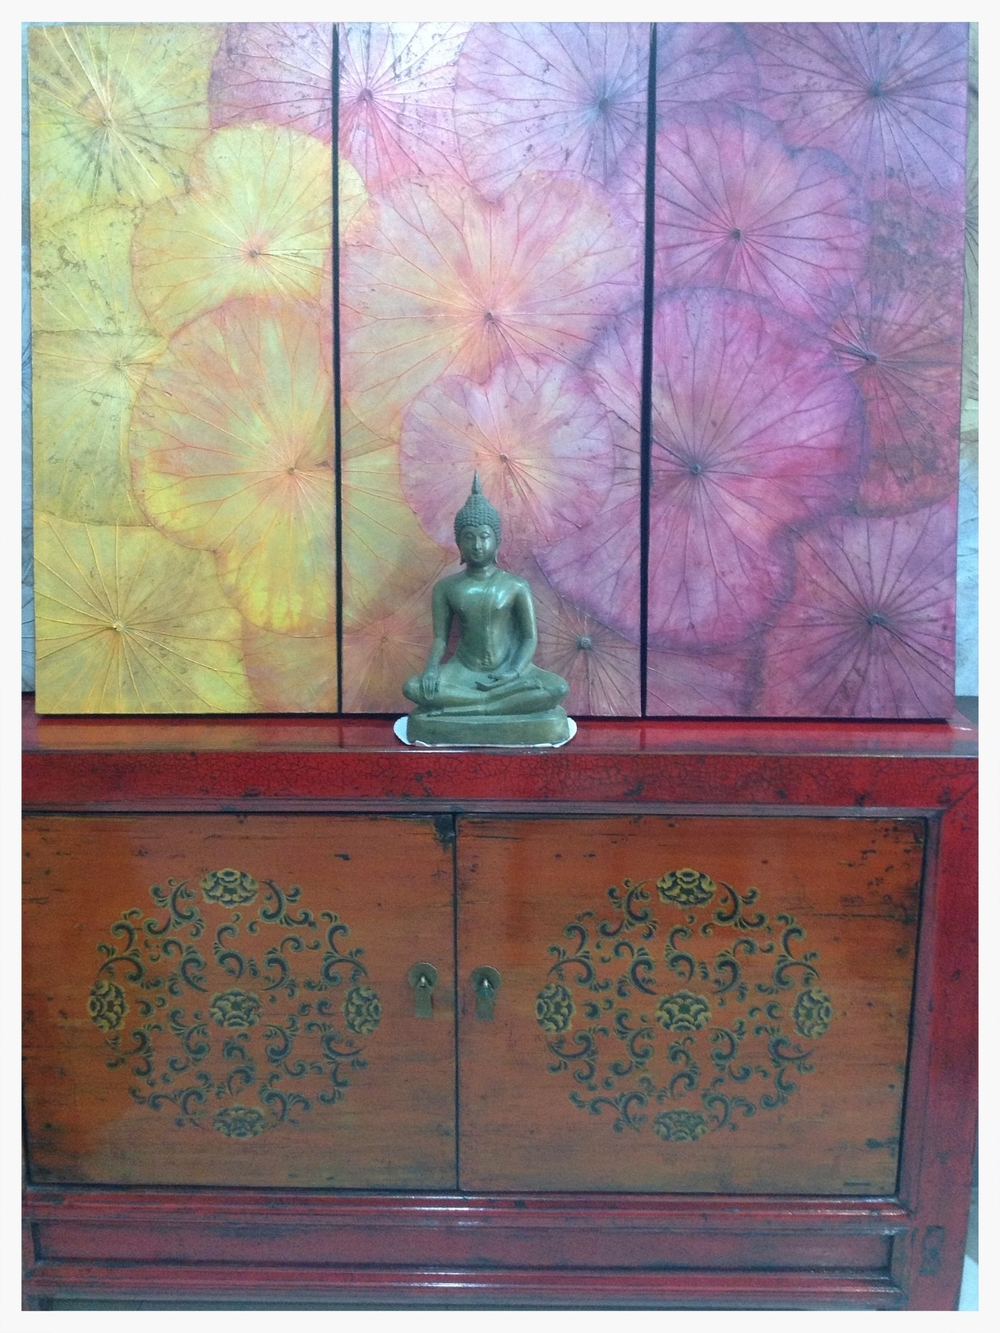 5.  3 pcs+Buddha+Antique.jpg